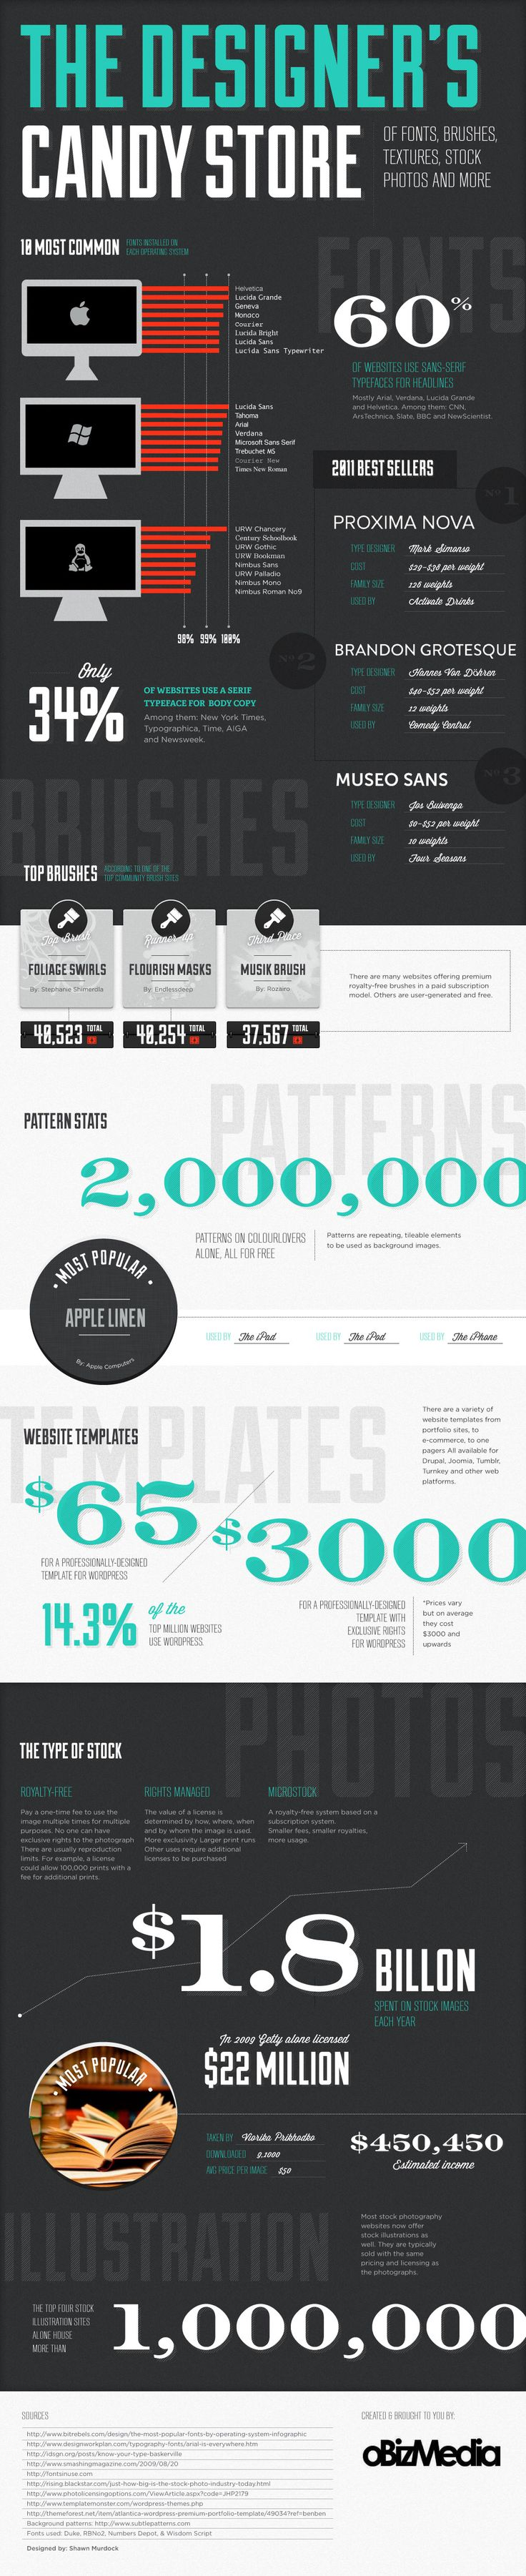 """Swell infographic, illustrates how infographics made by and for graphic designers can really screw up legibility and readability of a small set of """"bullet point"""" facts. But it looks nice.. ;)"""